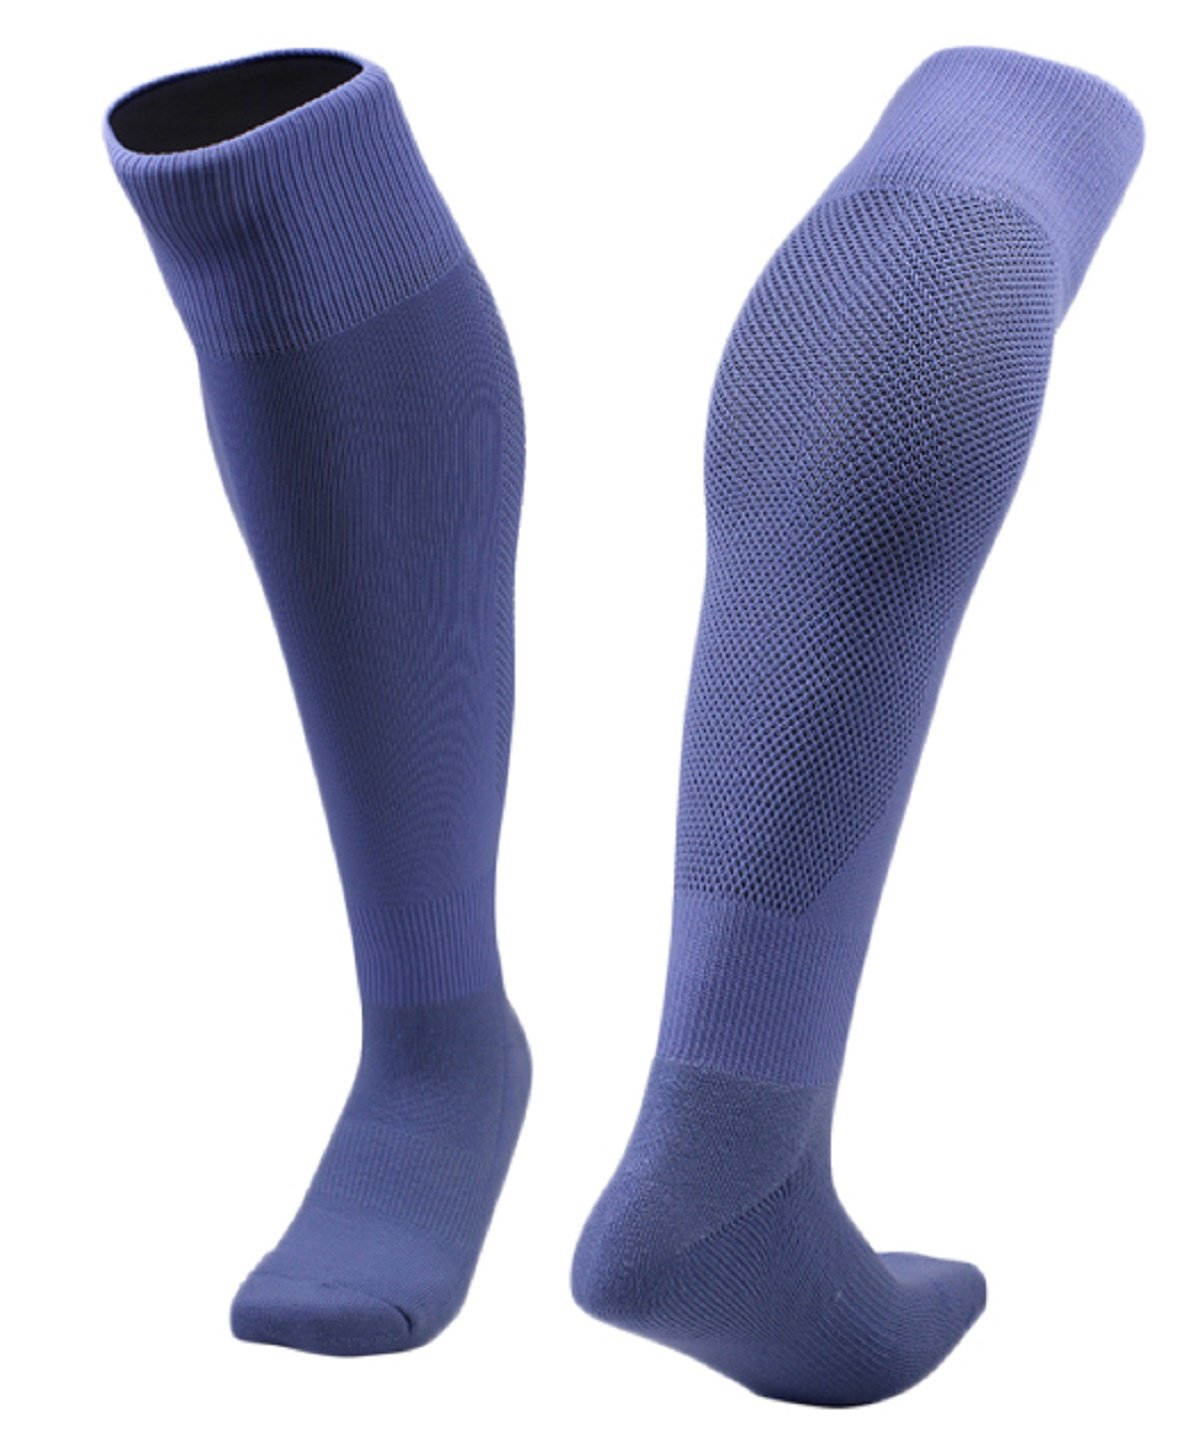 Lian LifeStyle Boy's 1 Pair Knee High Sports Socks Solid XS/S/M